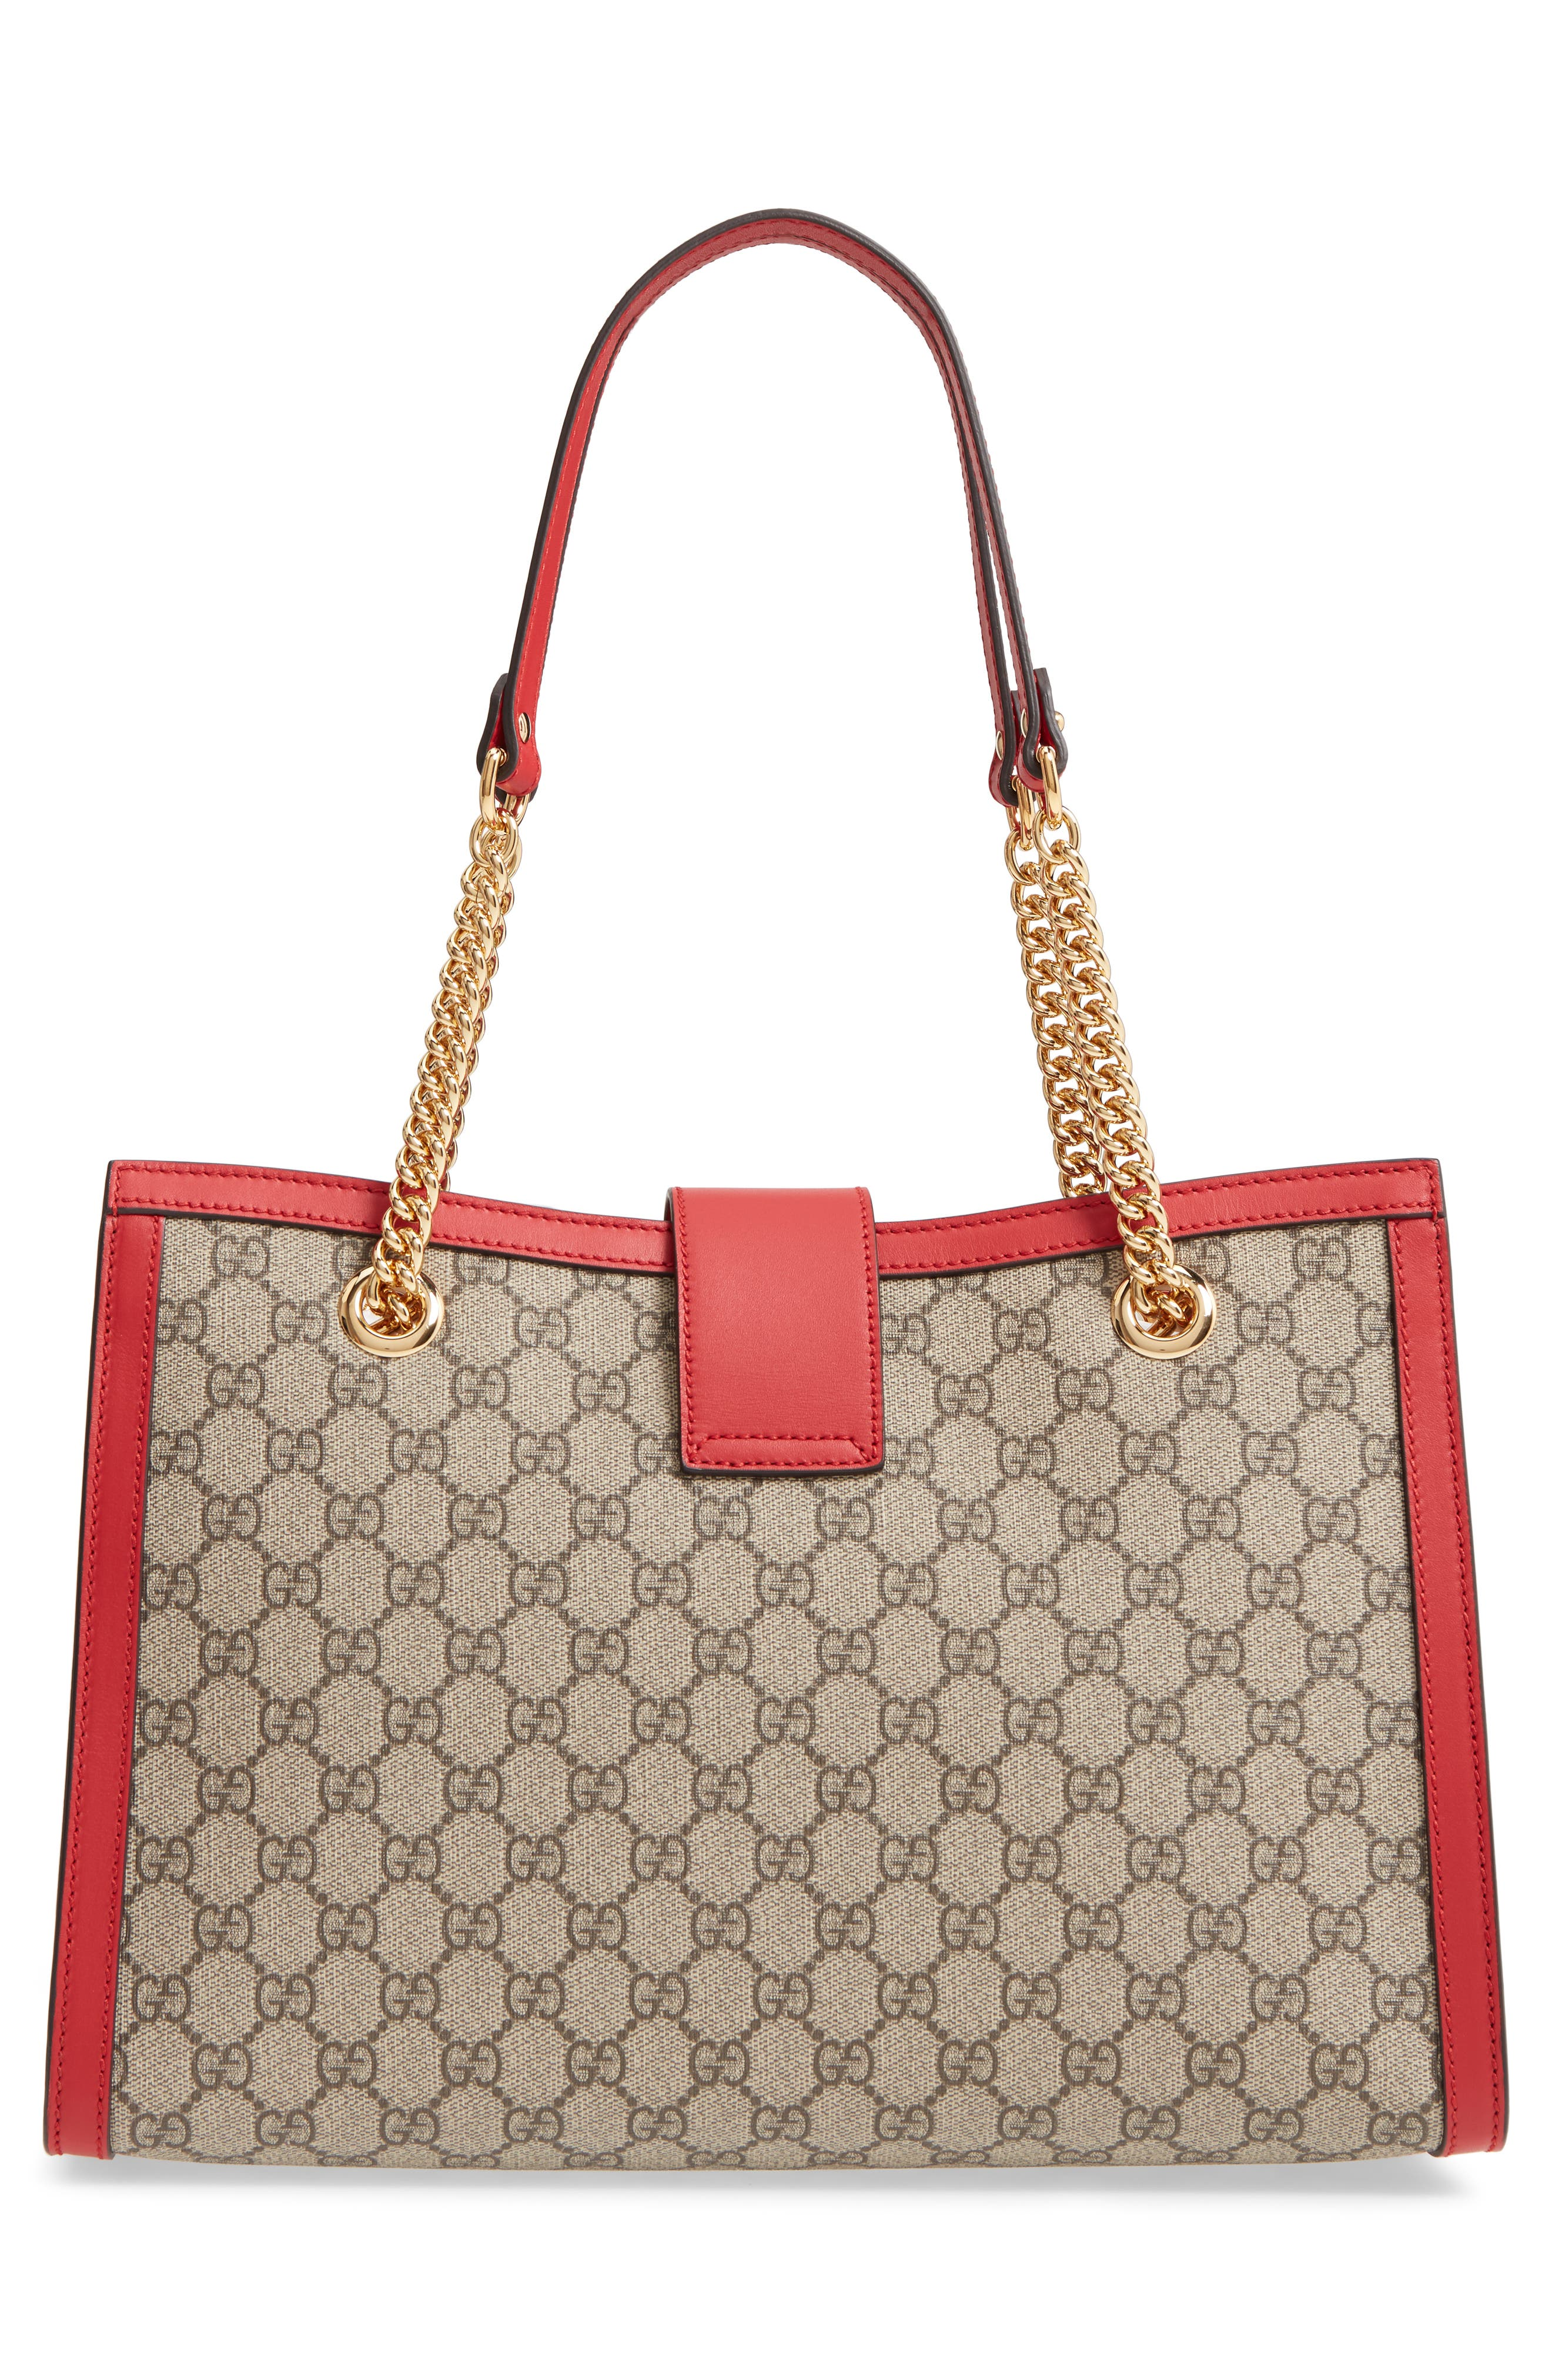 Medium Padlock GG Supreme Canvas Tote,                             Alternate thumbnail 3, color,                             283